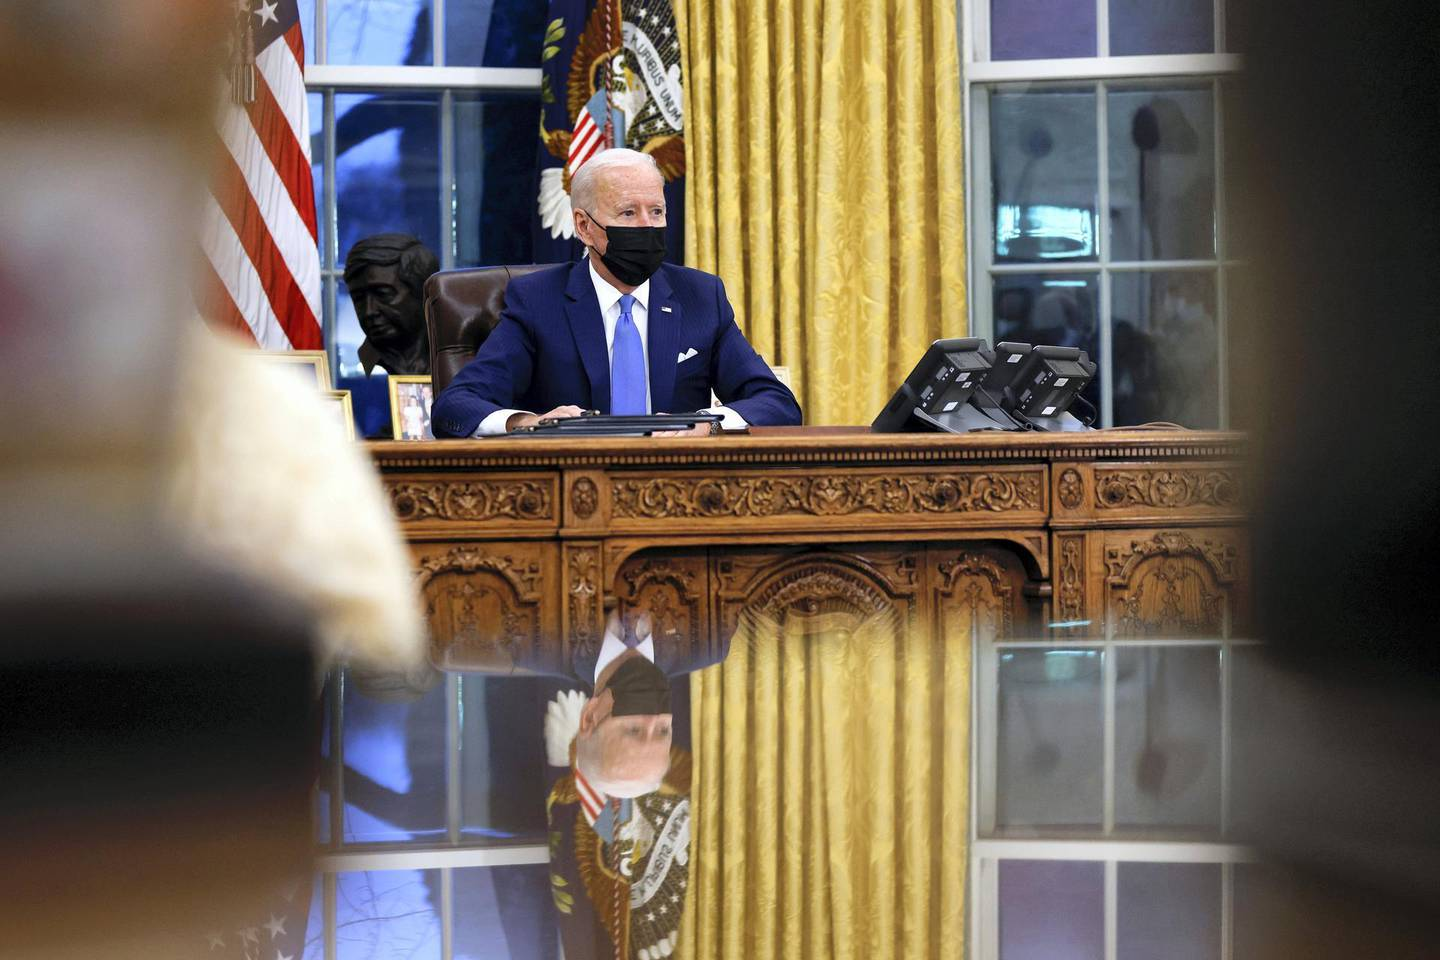 U.S. President Joe Biden signs executive orders on immigration reform inside the Oval Office at the White House in Washington, U.S., February 2, 2021. REUTERS/Tom Brenner